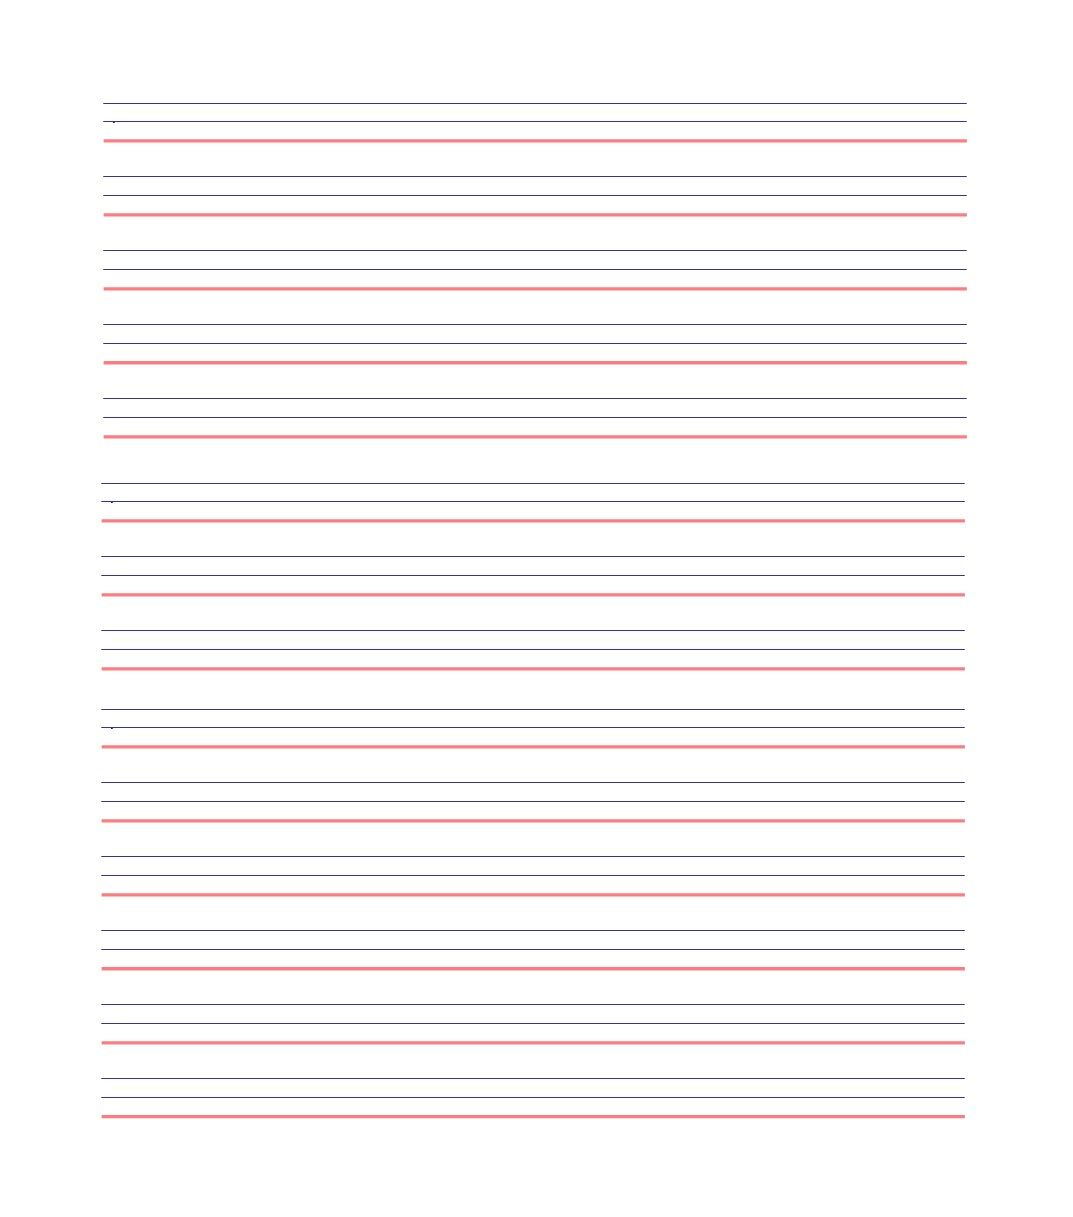 Microsoft Word Notebook Paper Template Tomope Zaribanks Co Within Notebook Paper Template For Word Notebook Paper Template Paper Template Ruled Paper